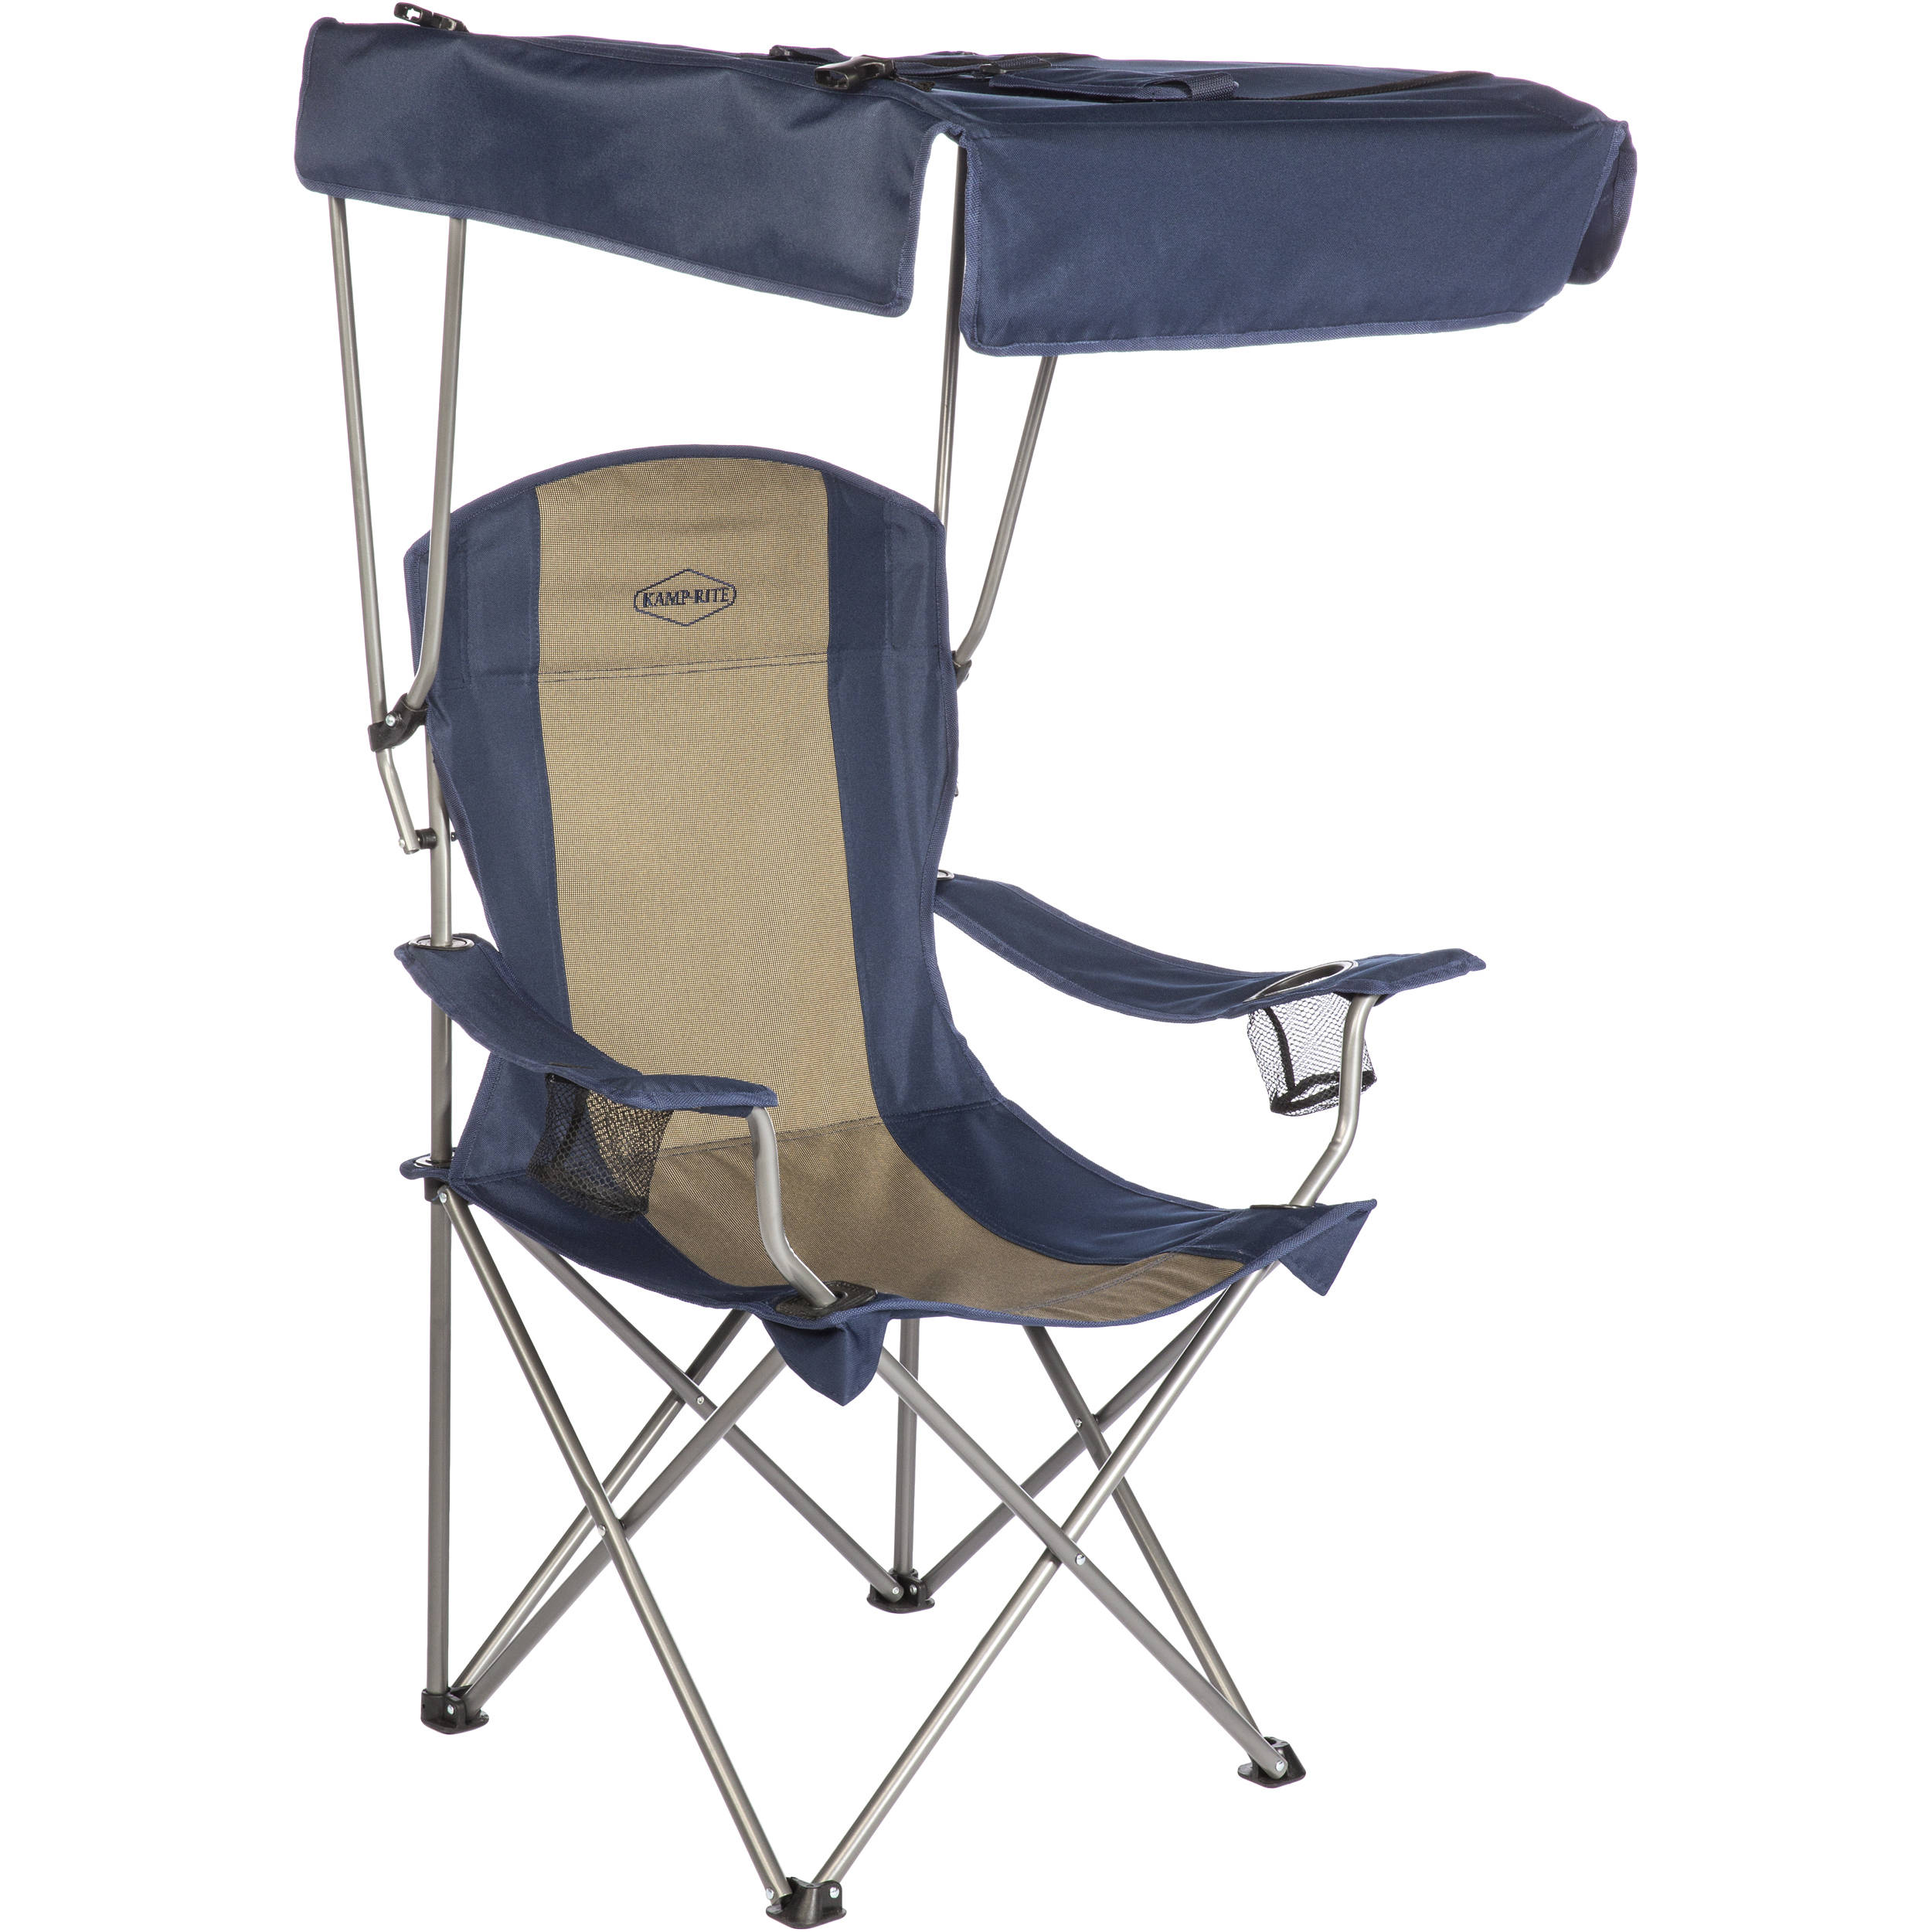 Cing Chairs Walmart Folding Canopy C Chairs Deluxe Folding Canopy Chair Walmart New Sun Cing Folding  sc 1 st  Screensinthewild.org & cing chairs walmart - 28 images - folding chairs walmart cing ...